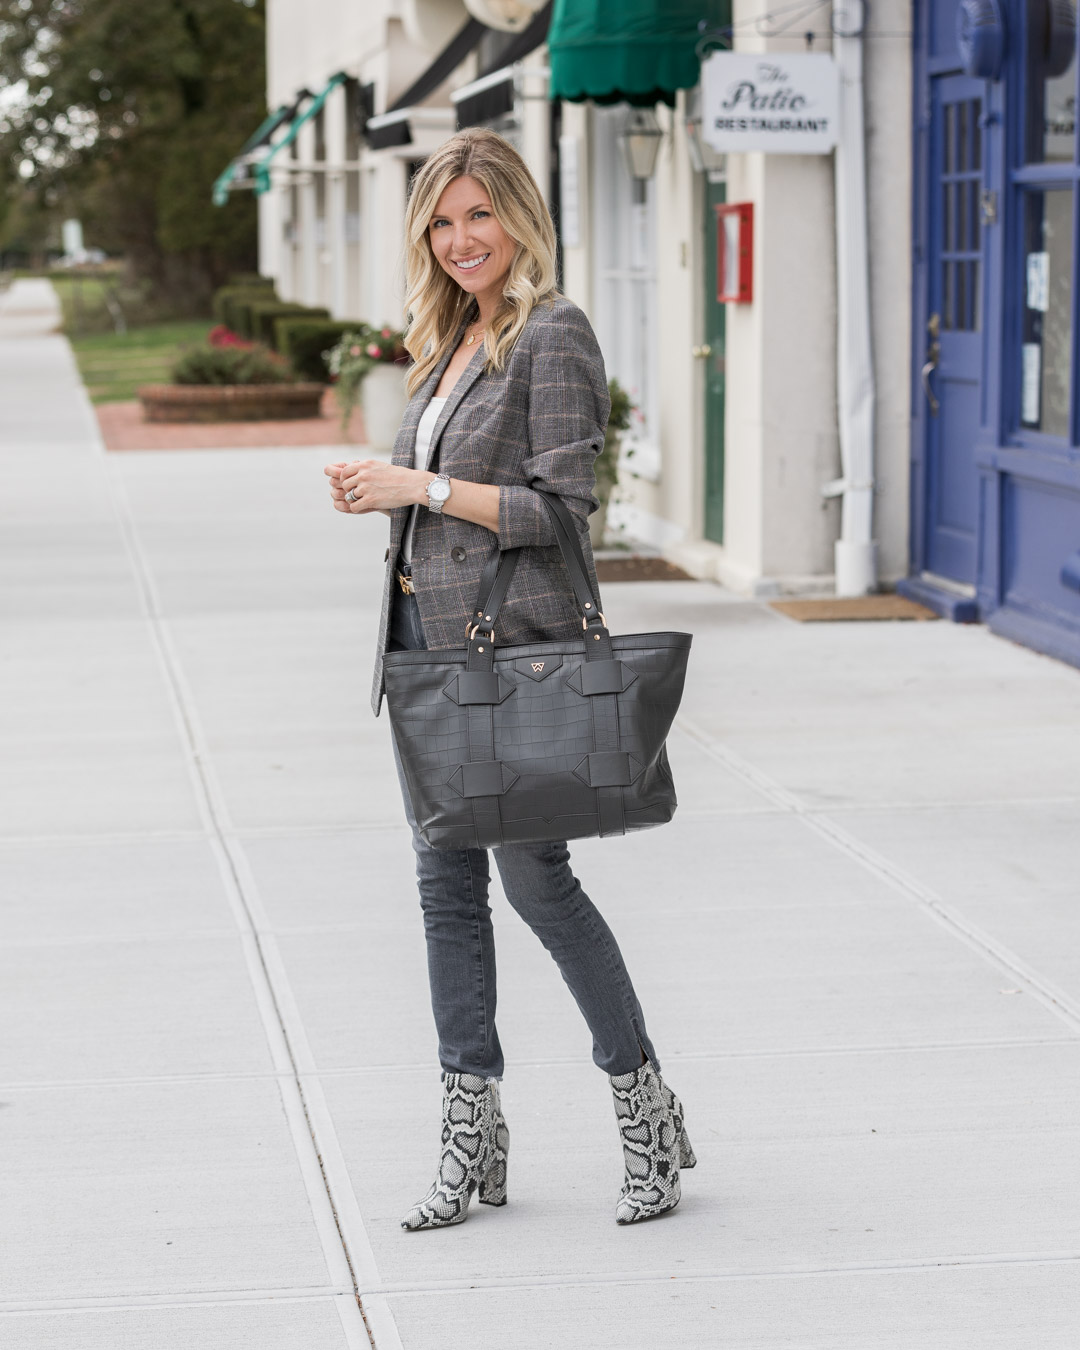 plaid-express-blazer-and-kelly-wynne-bag-the-glamorous-gal